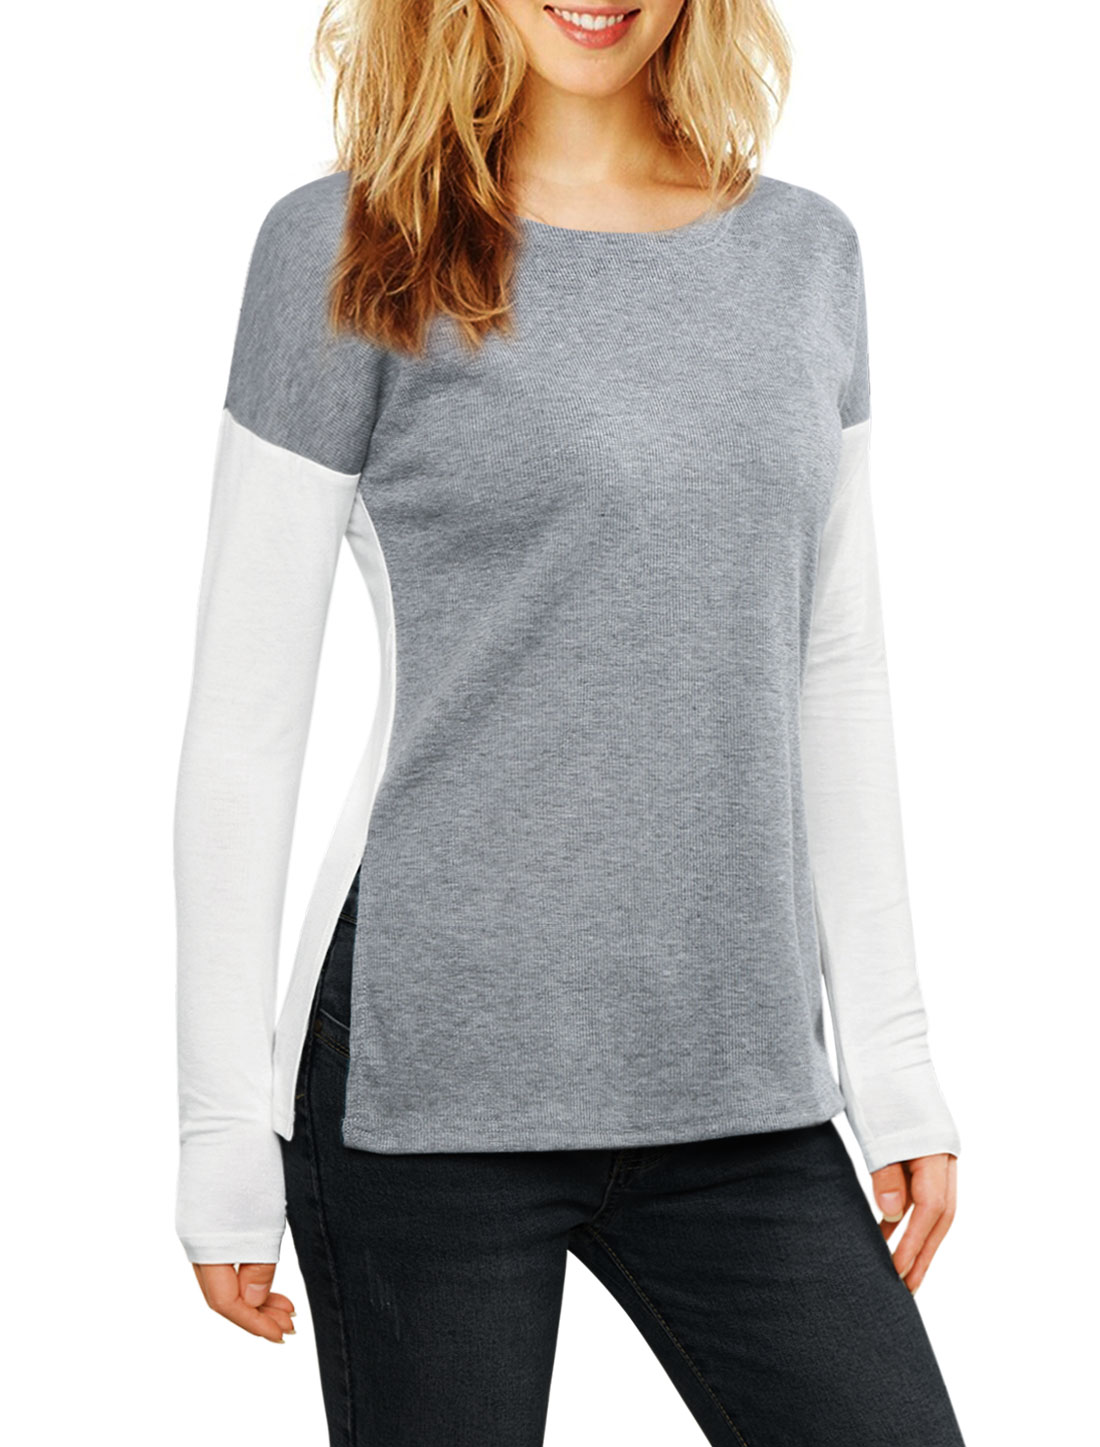 Women Color Block Side-Slit Paneled Slim Fit Ribbed Top Gray XL